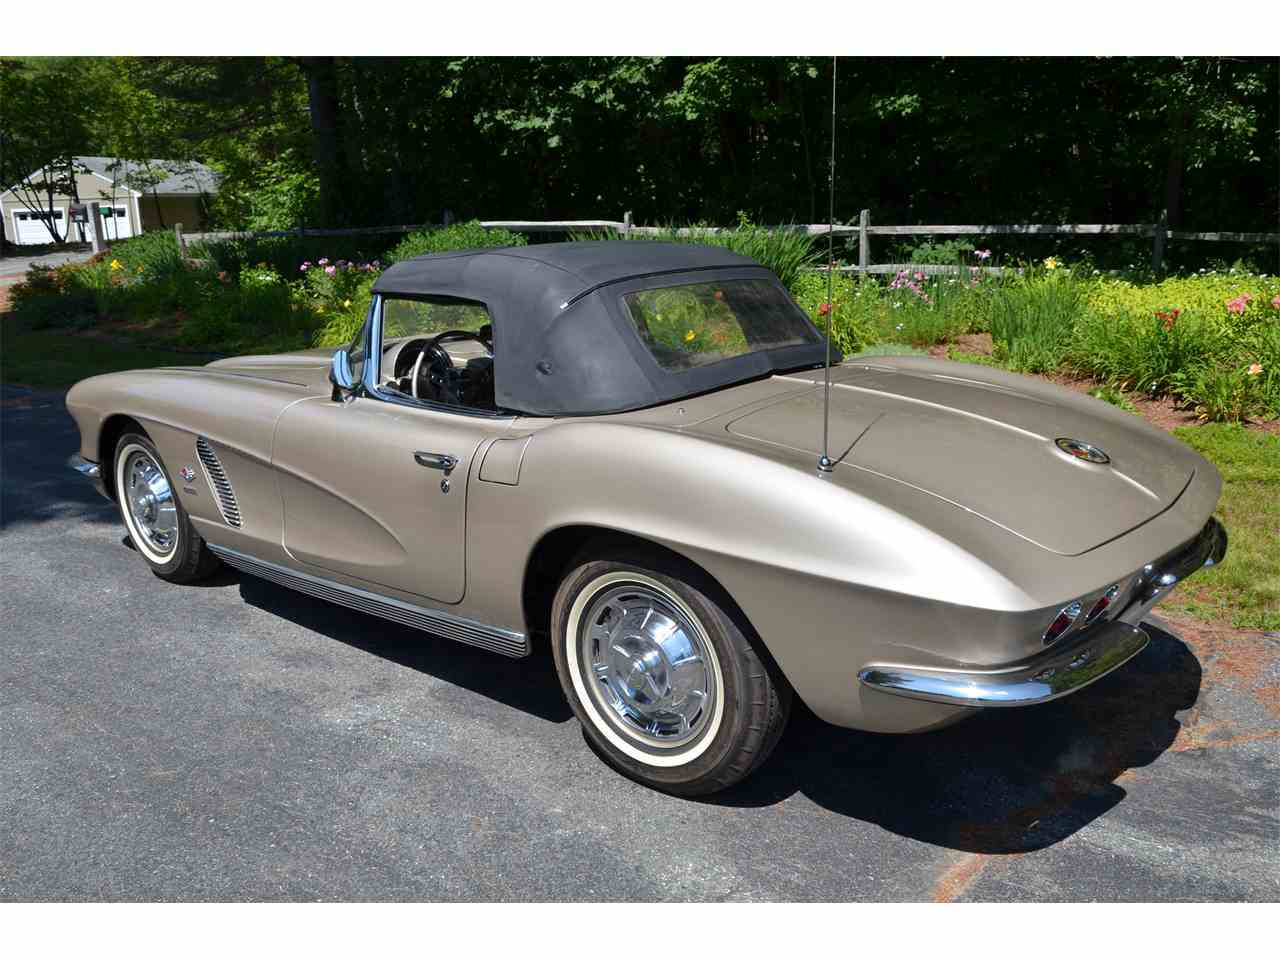 Large Picture of 1962 Chevrolet Corvette located in Vermont Offered by a Private Seller - LWEM